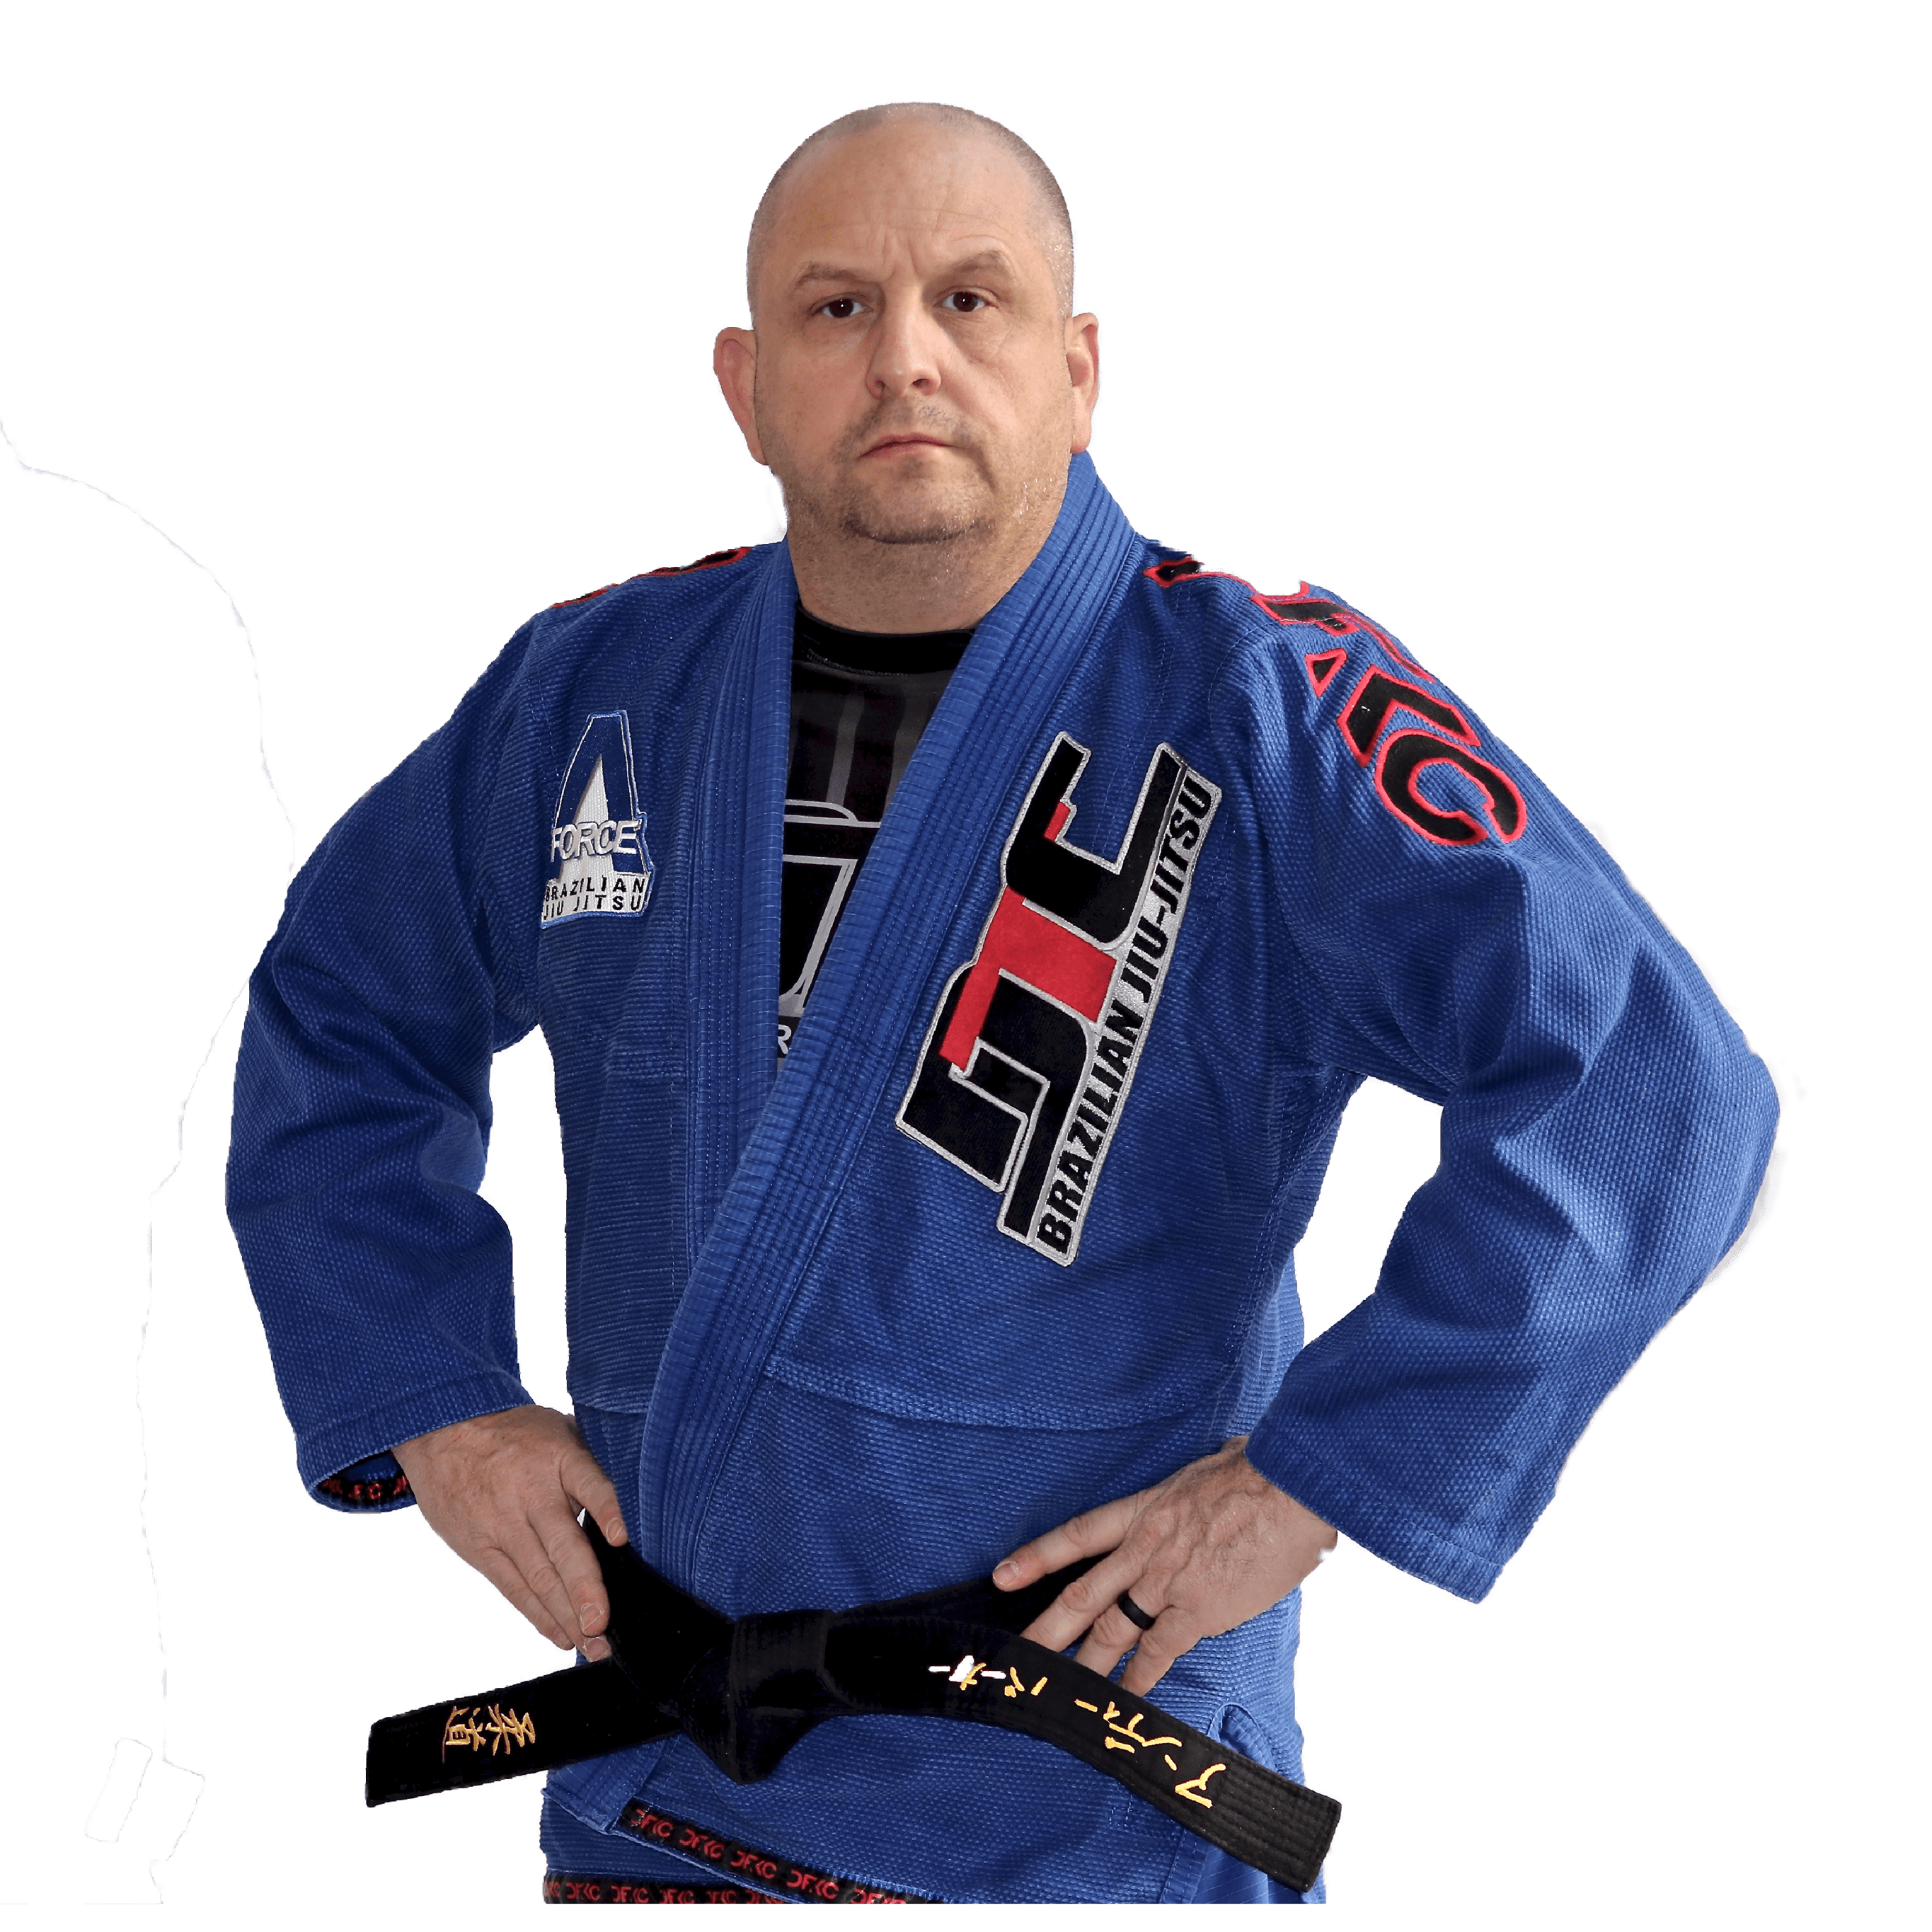 Sensei Andy Barker in Chesapeake - Da Firma Training Center